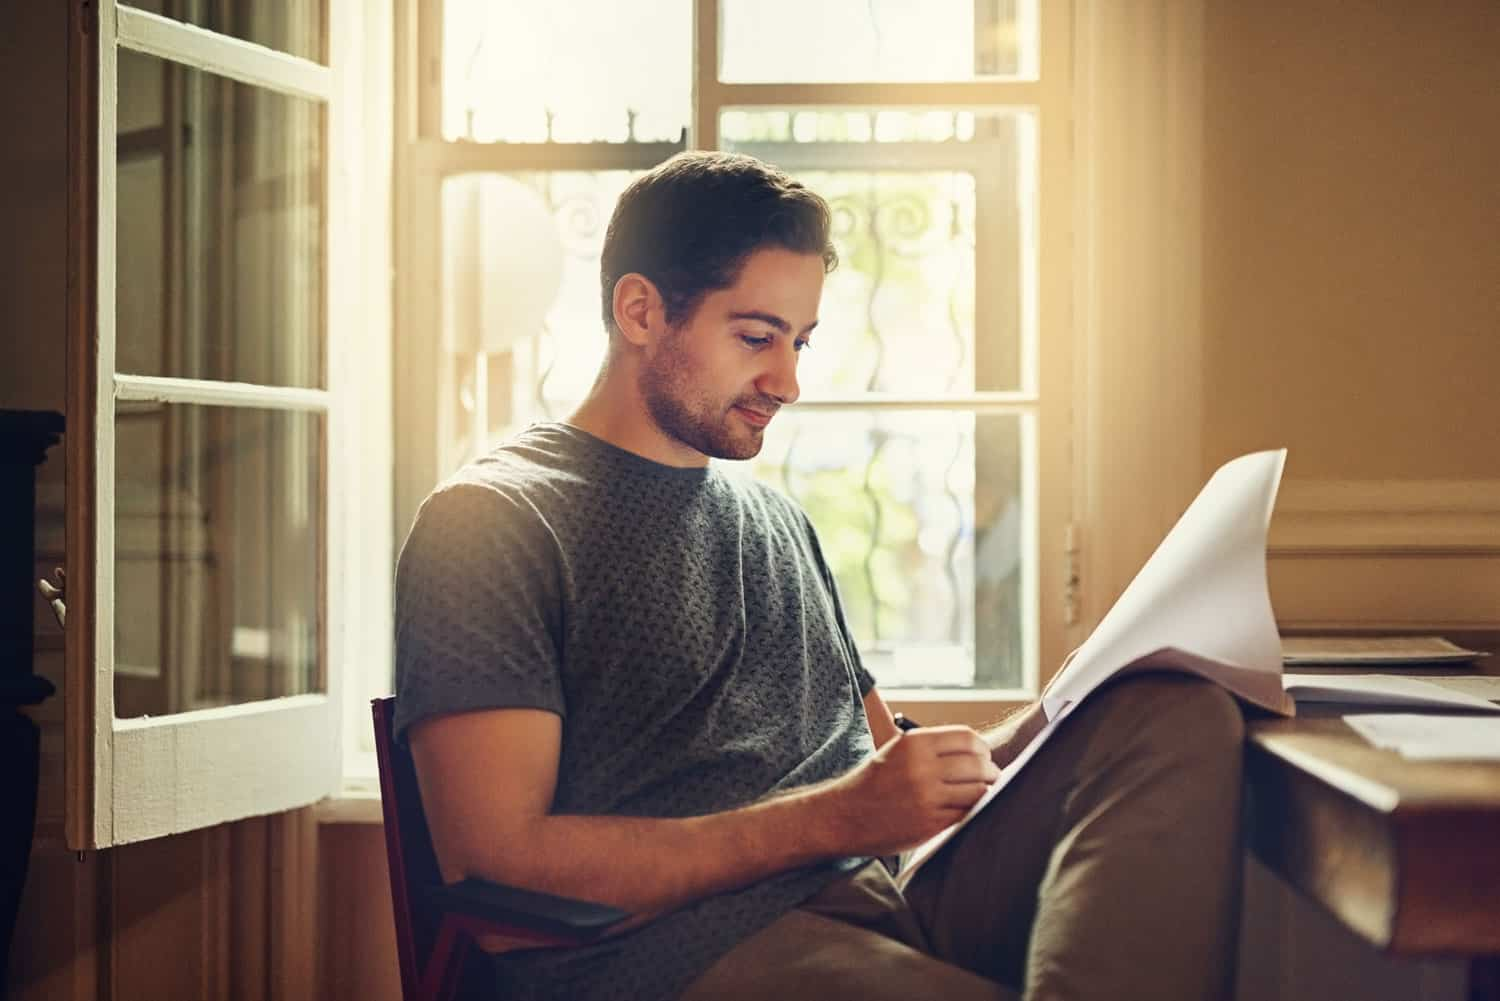 photo of person reading lease